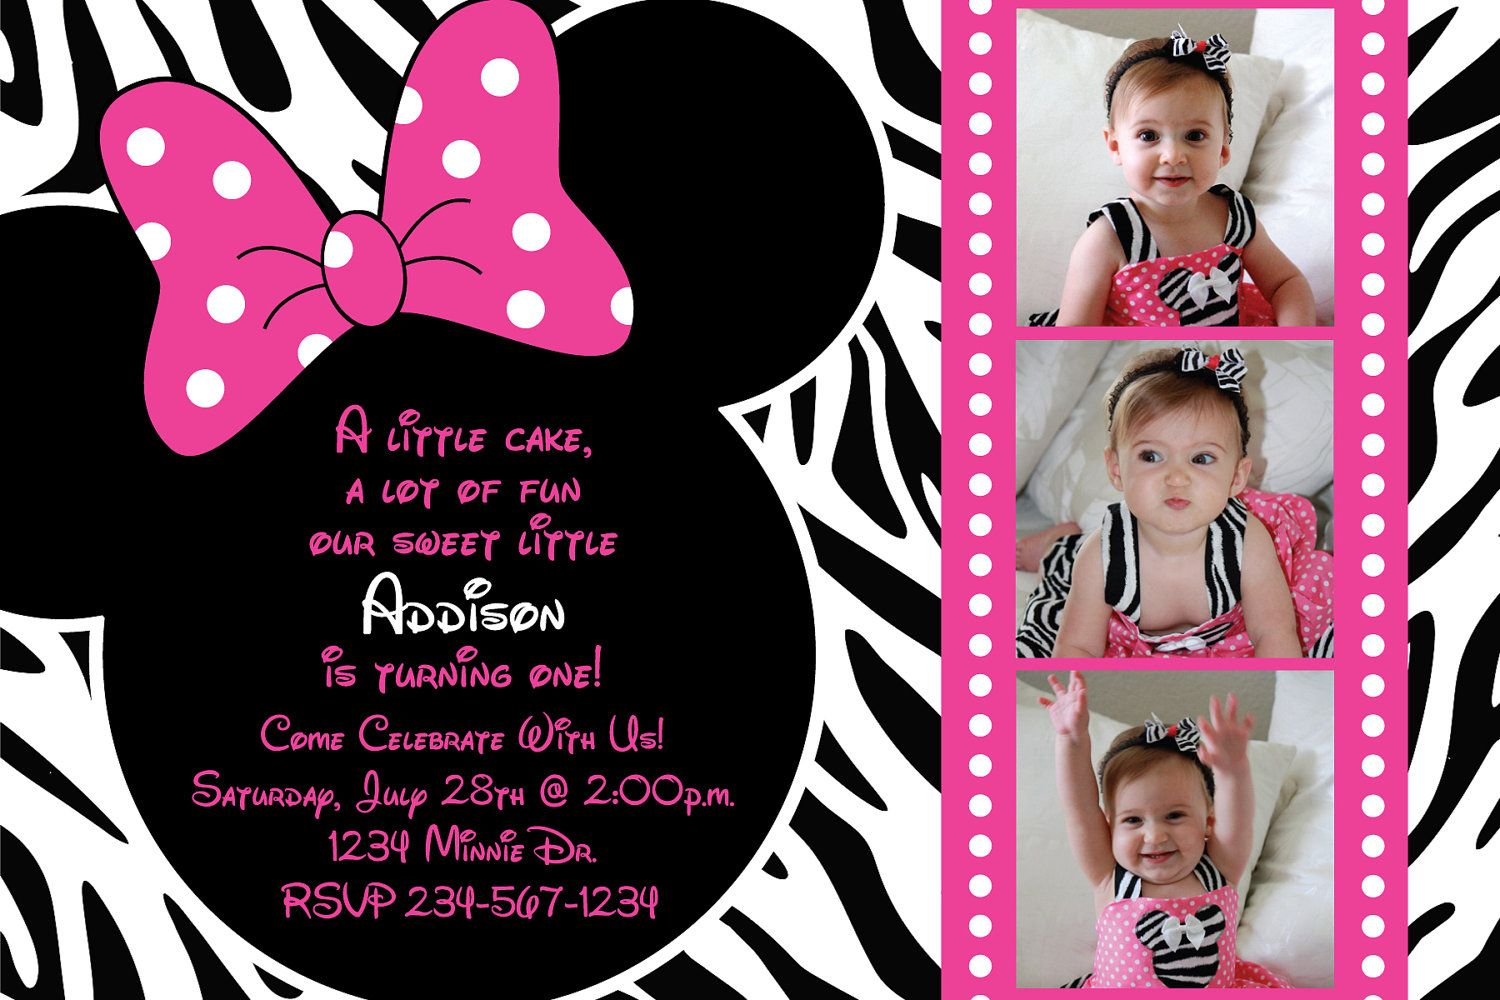 Minnie mouse zebra birthday party custom invitation or thank you minnie mouse zebra birthday party custom invitation or thank you card three picture option monicamarmolfo Images